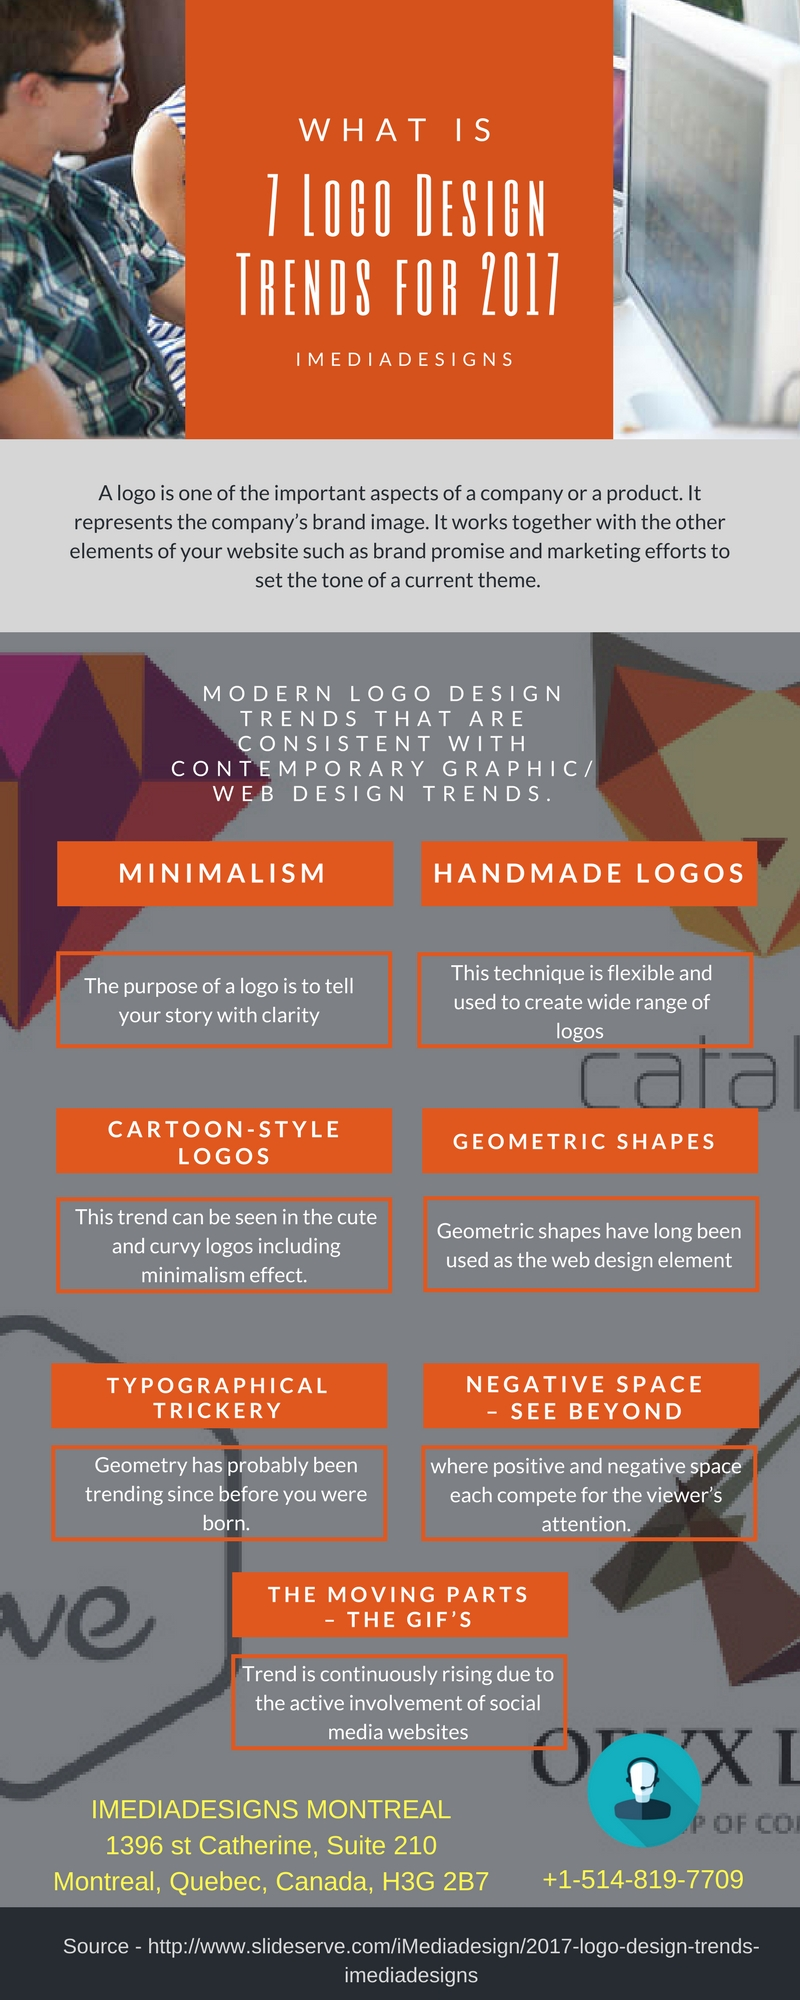 7-logo-design-trends-for-2017